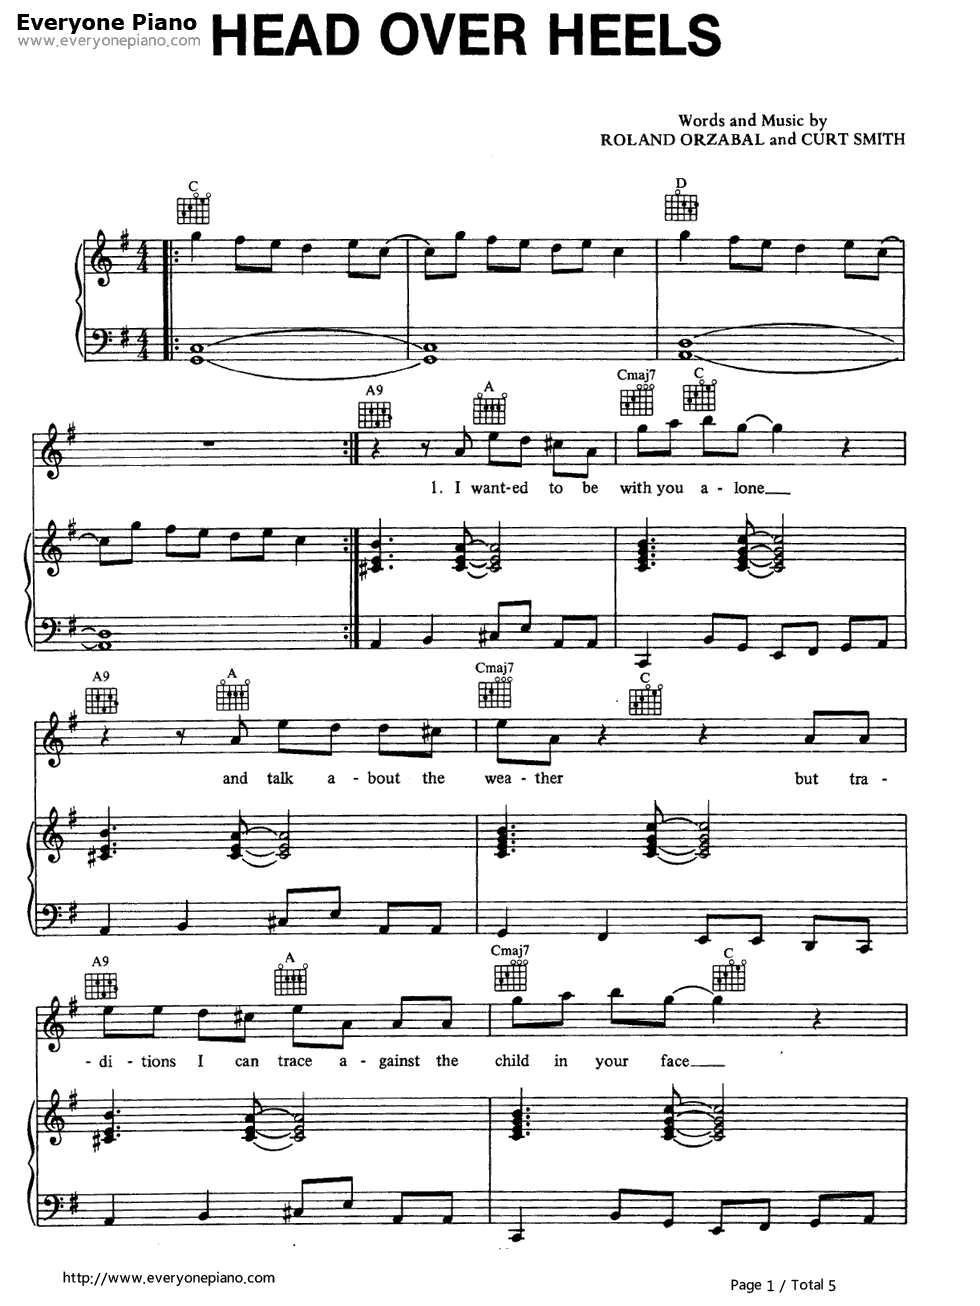 Head over heels (tears for fears) sheet music for french horn.